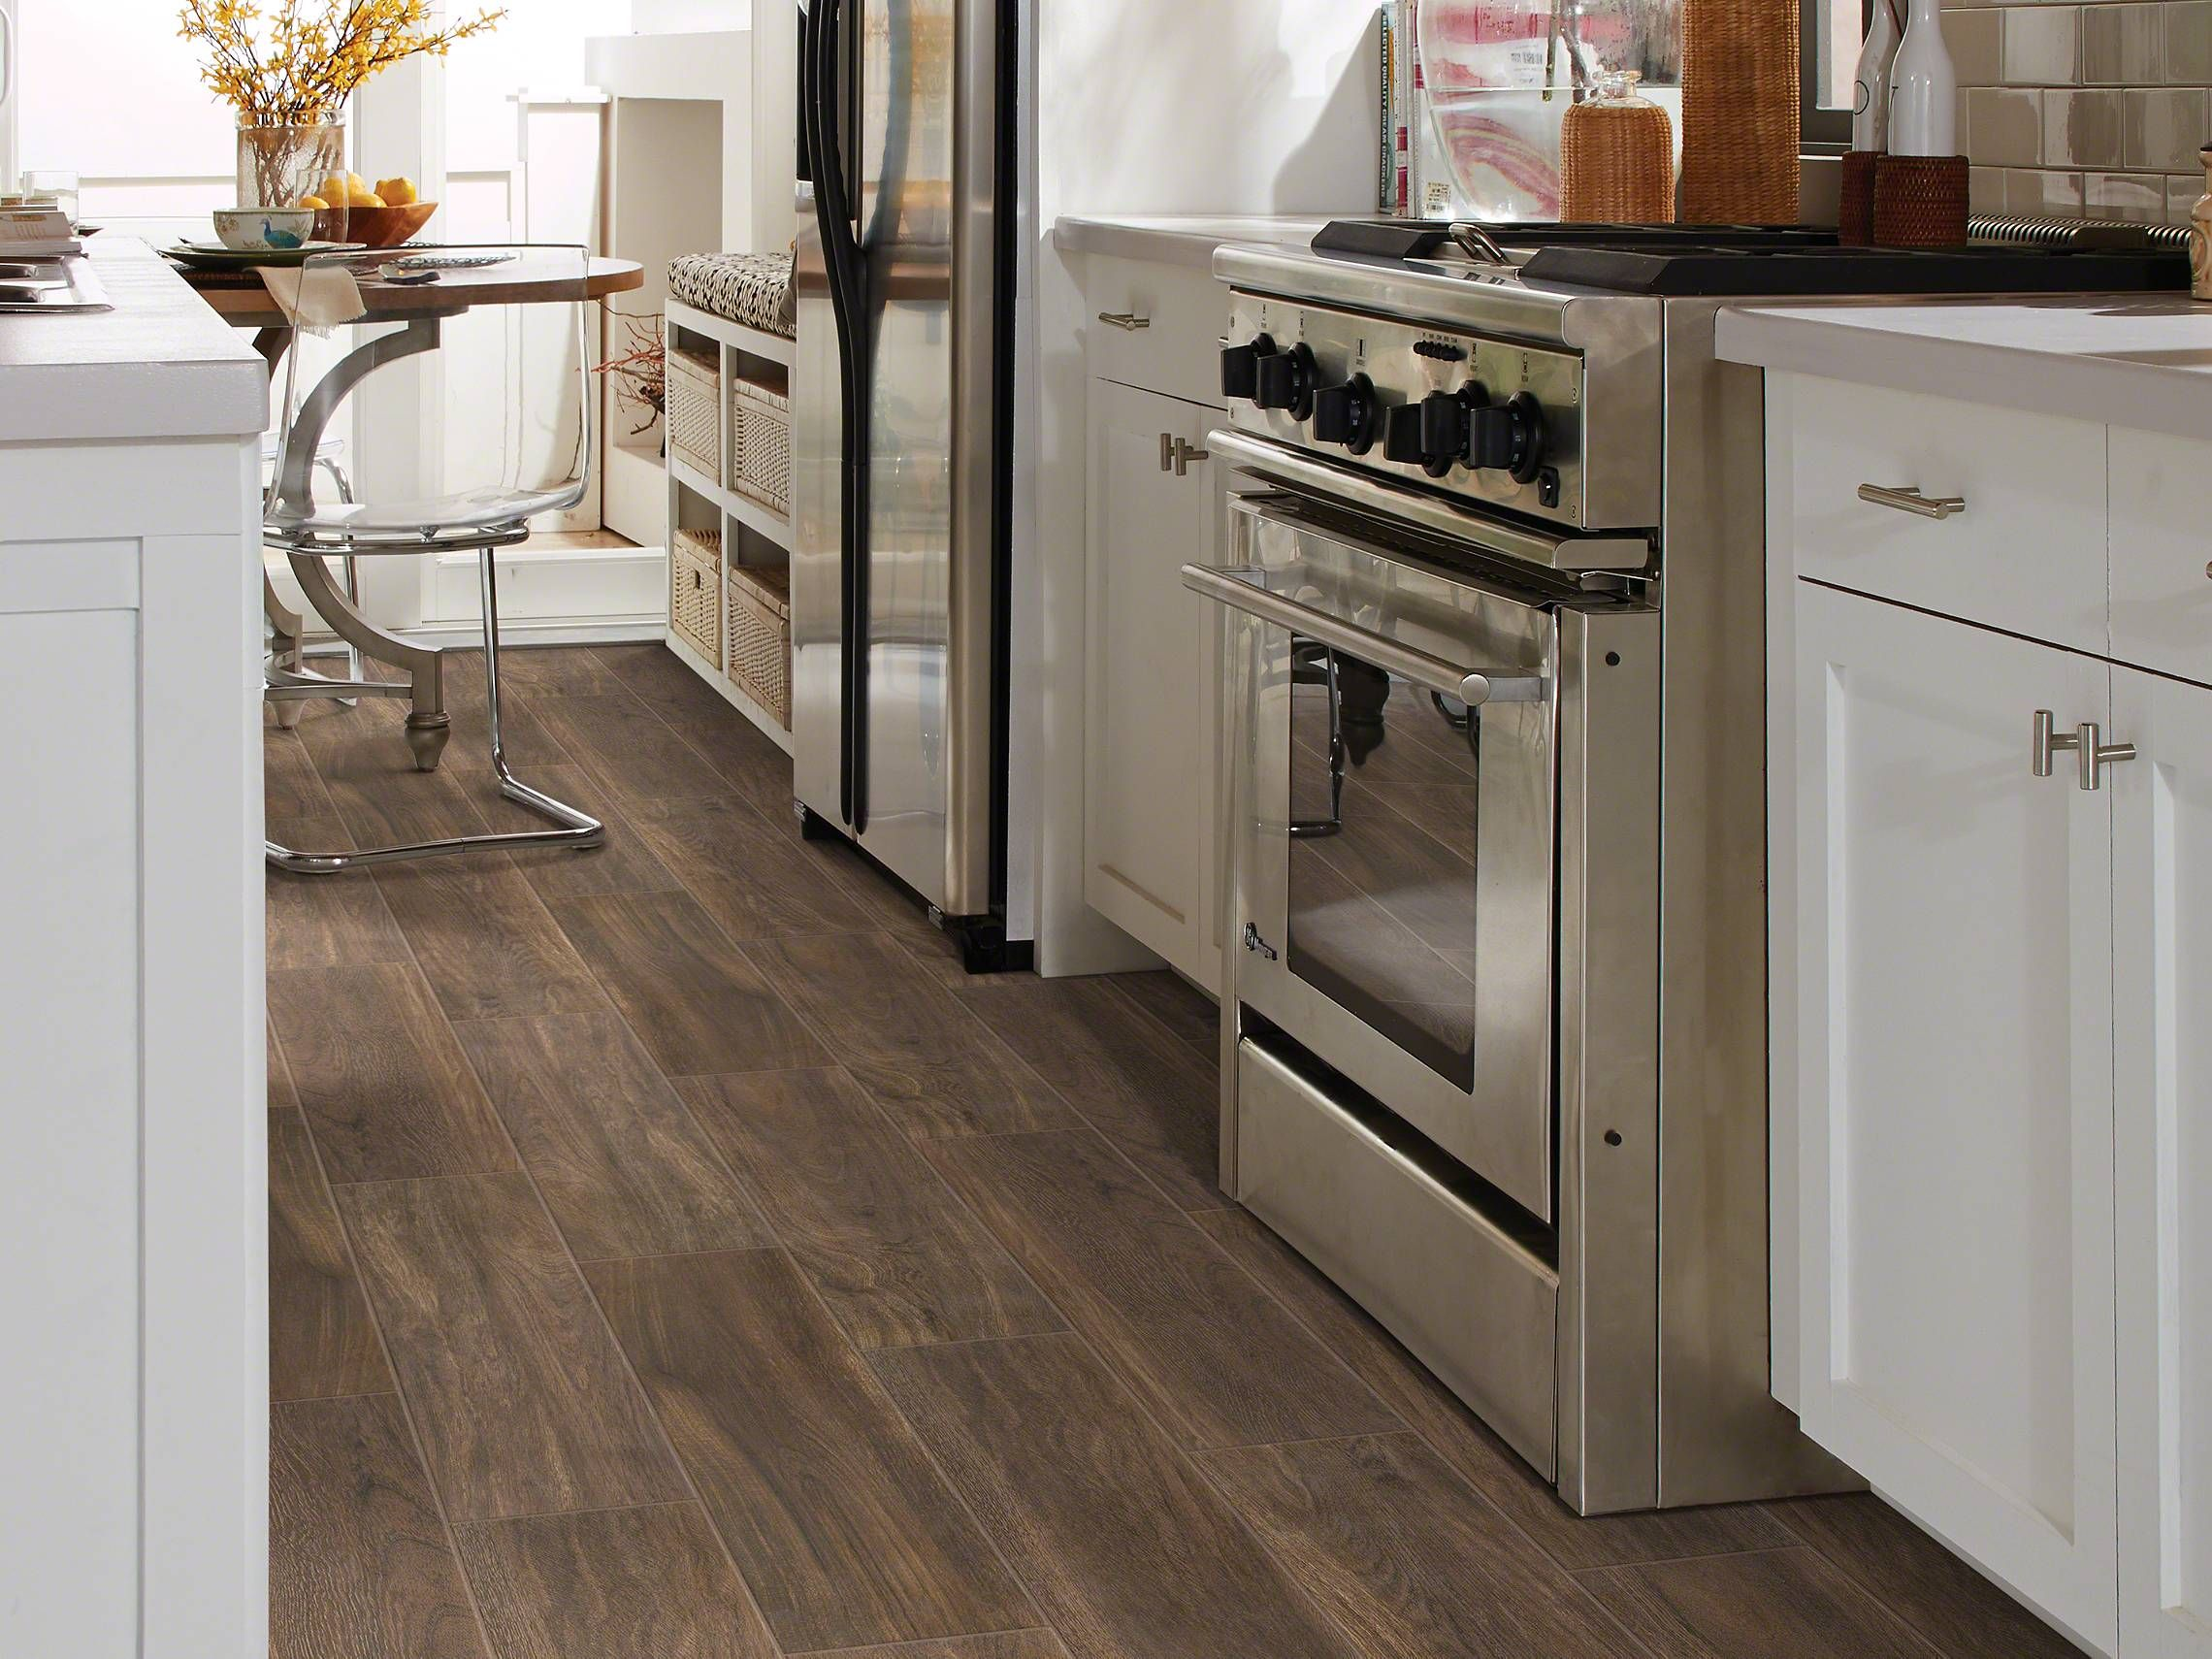 VALENTINO 8X32 Room View Tile Flooring from SHAW